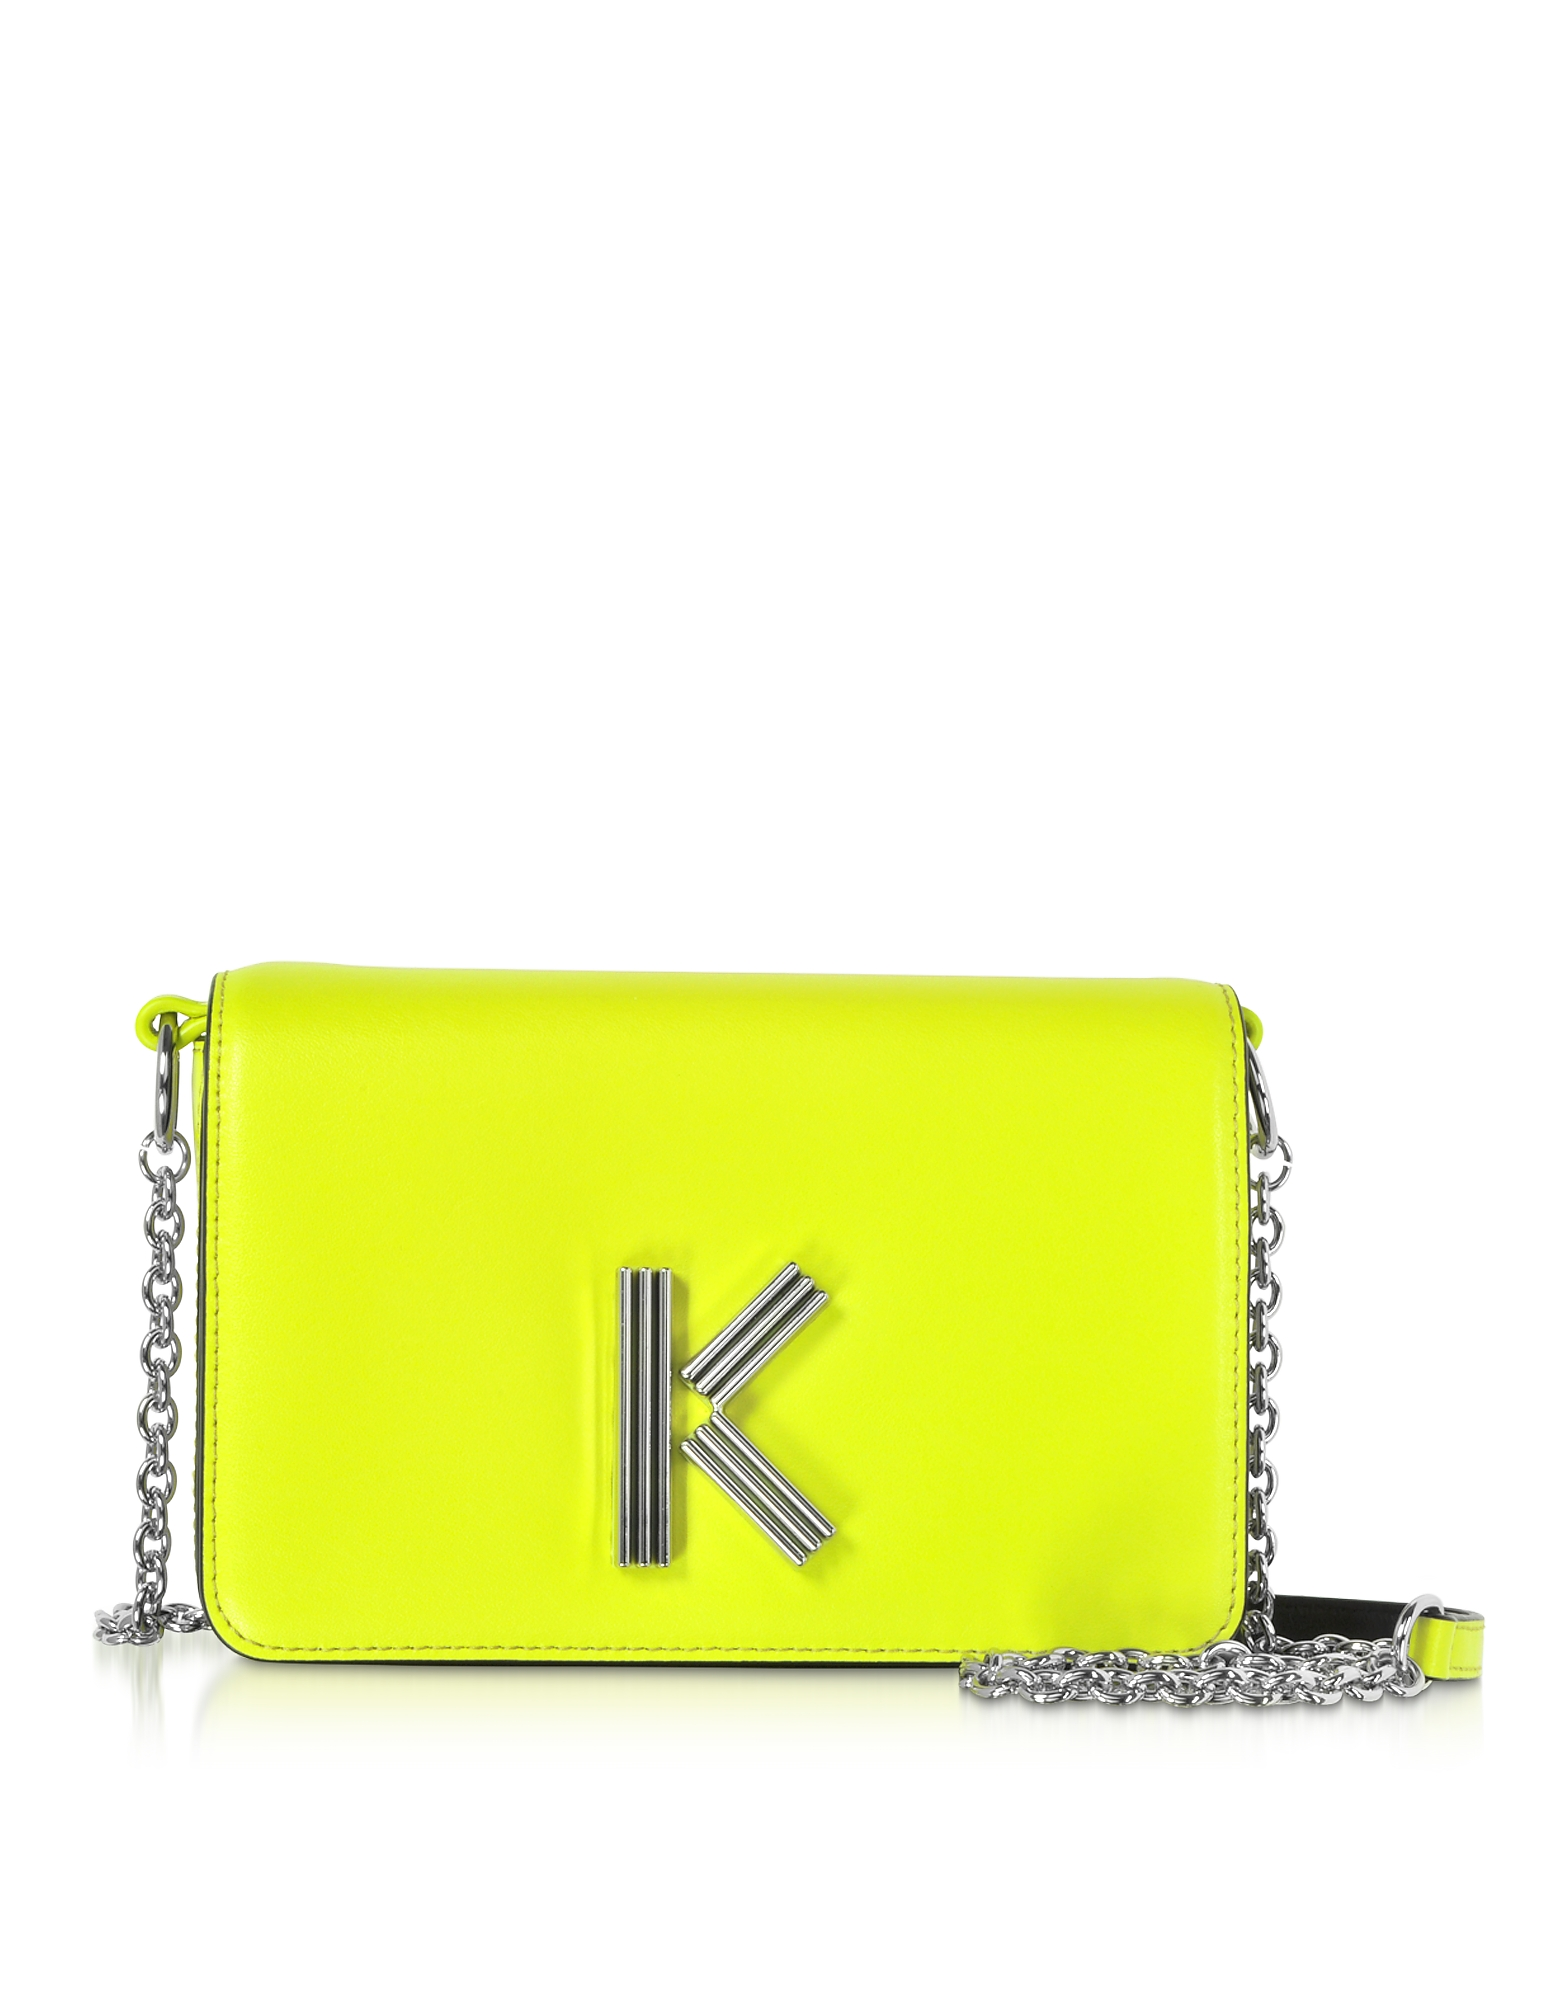 Citron Leather K-Bag Chainy bag